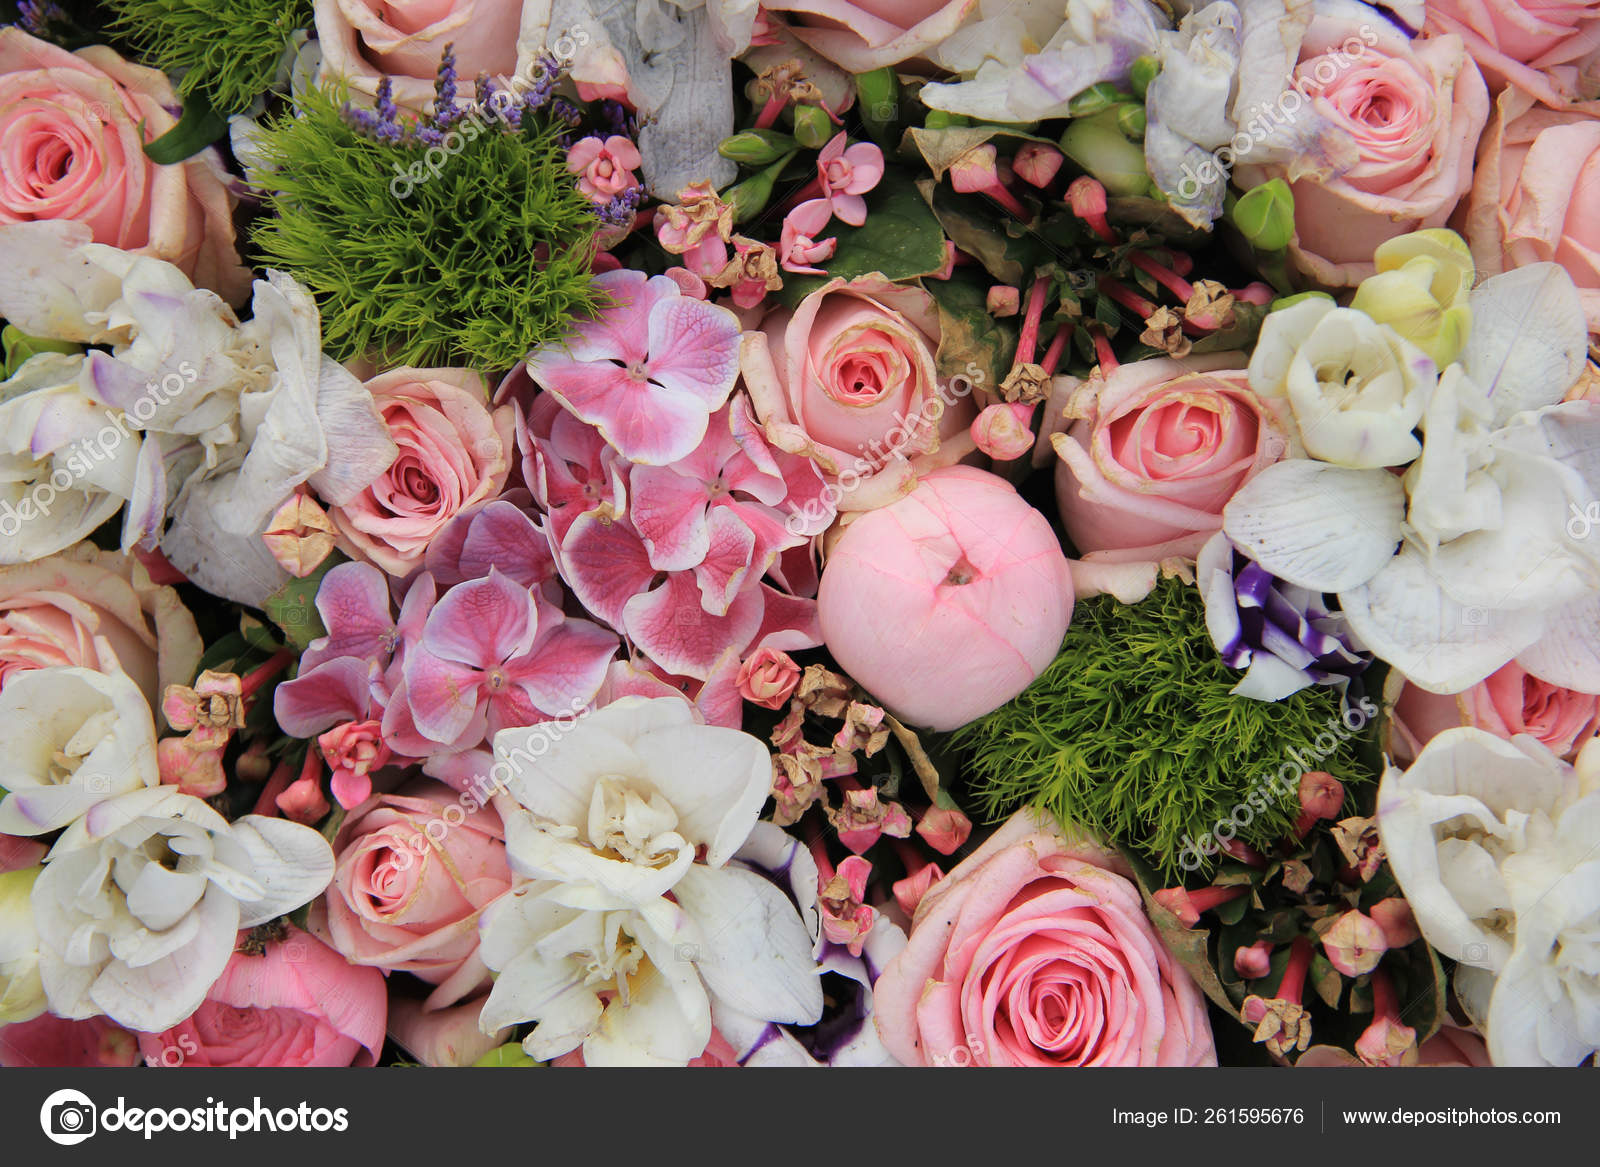 Wedding Arrangement Various Shades Pink Different Sorts Flowers Stock Photo C Yayimages 261595676